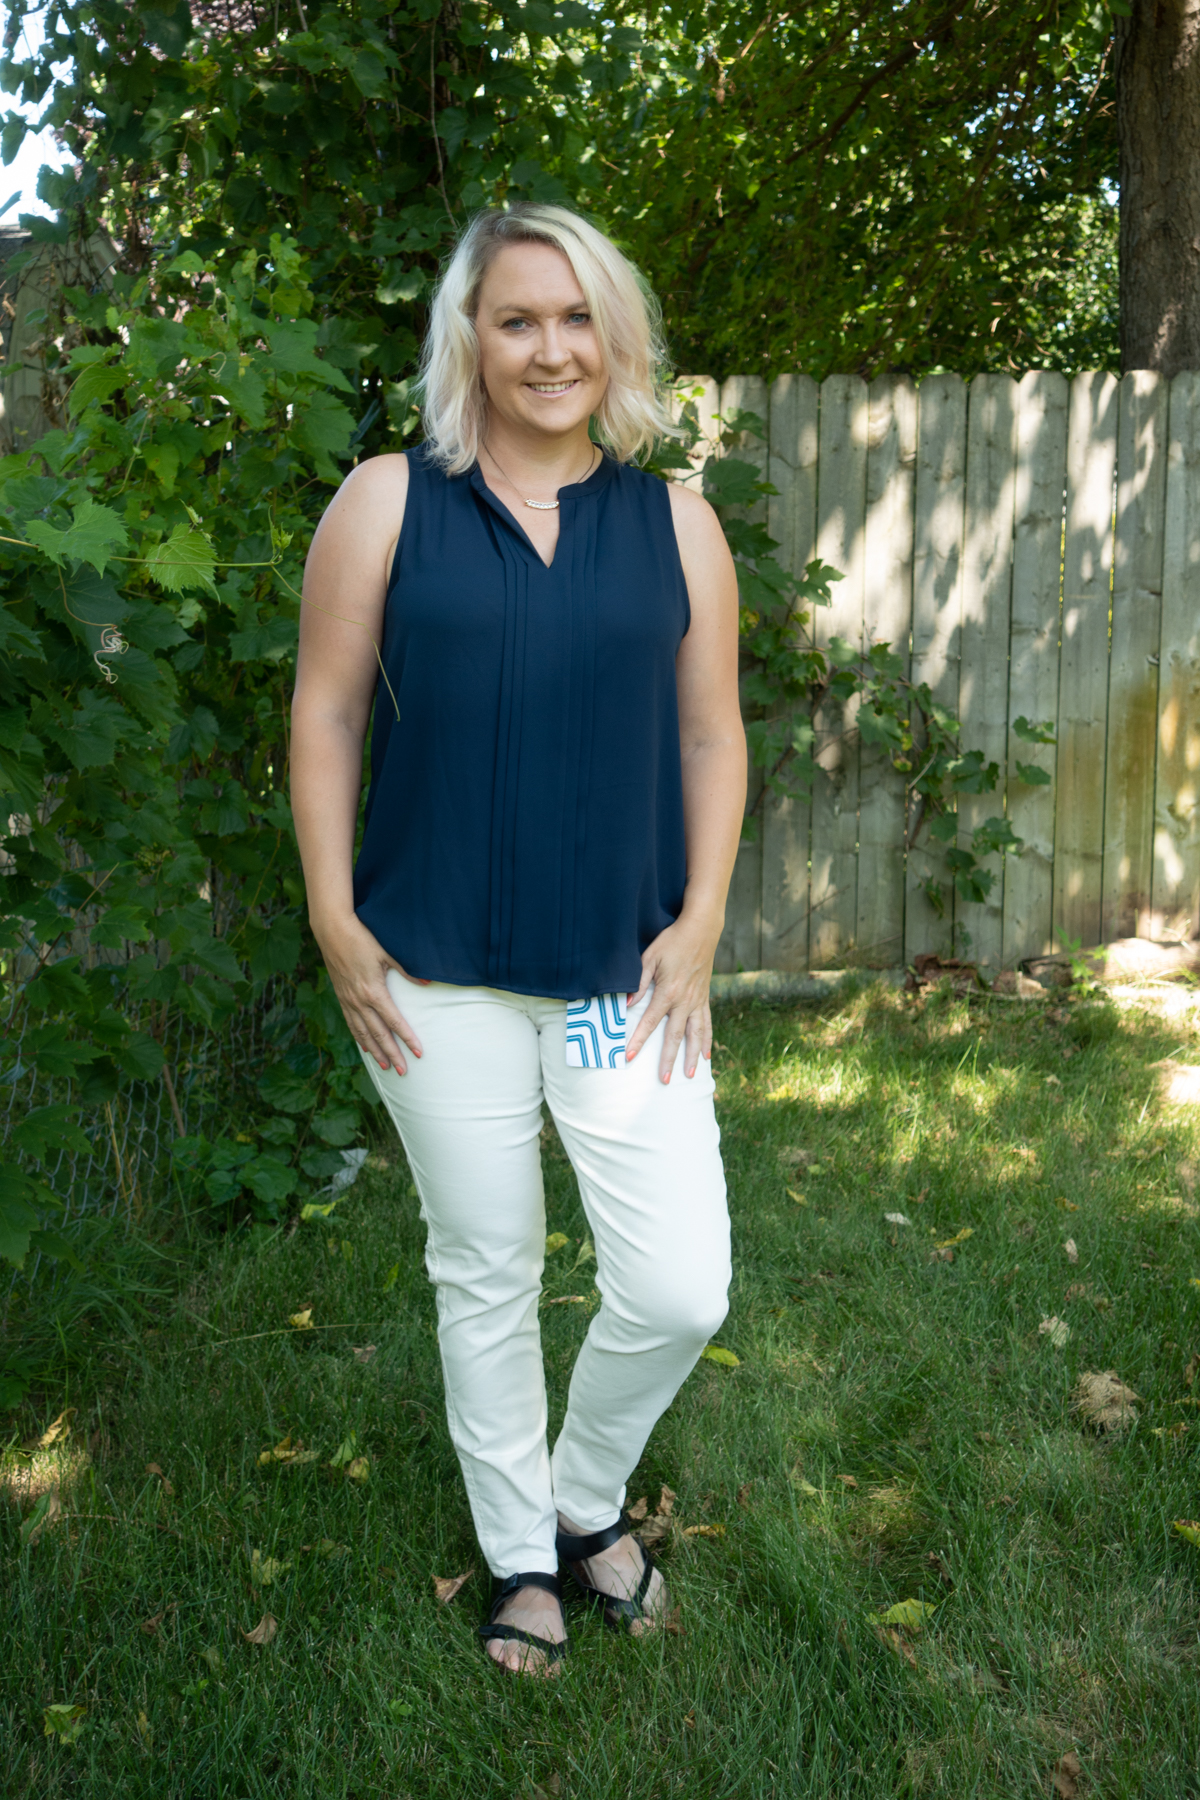 - Blue sleeveless top with the same white dress pants